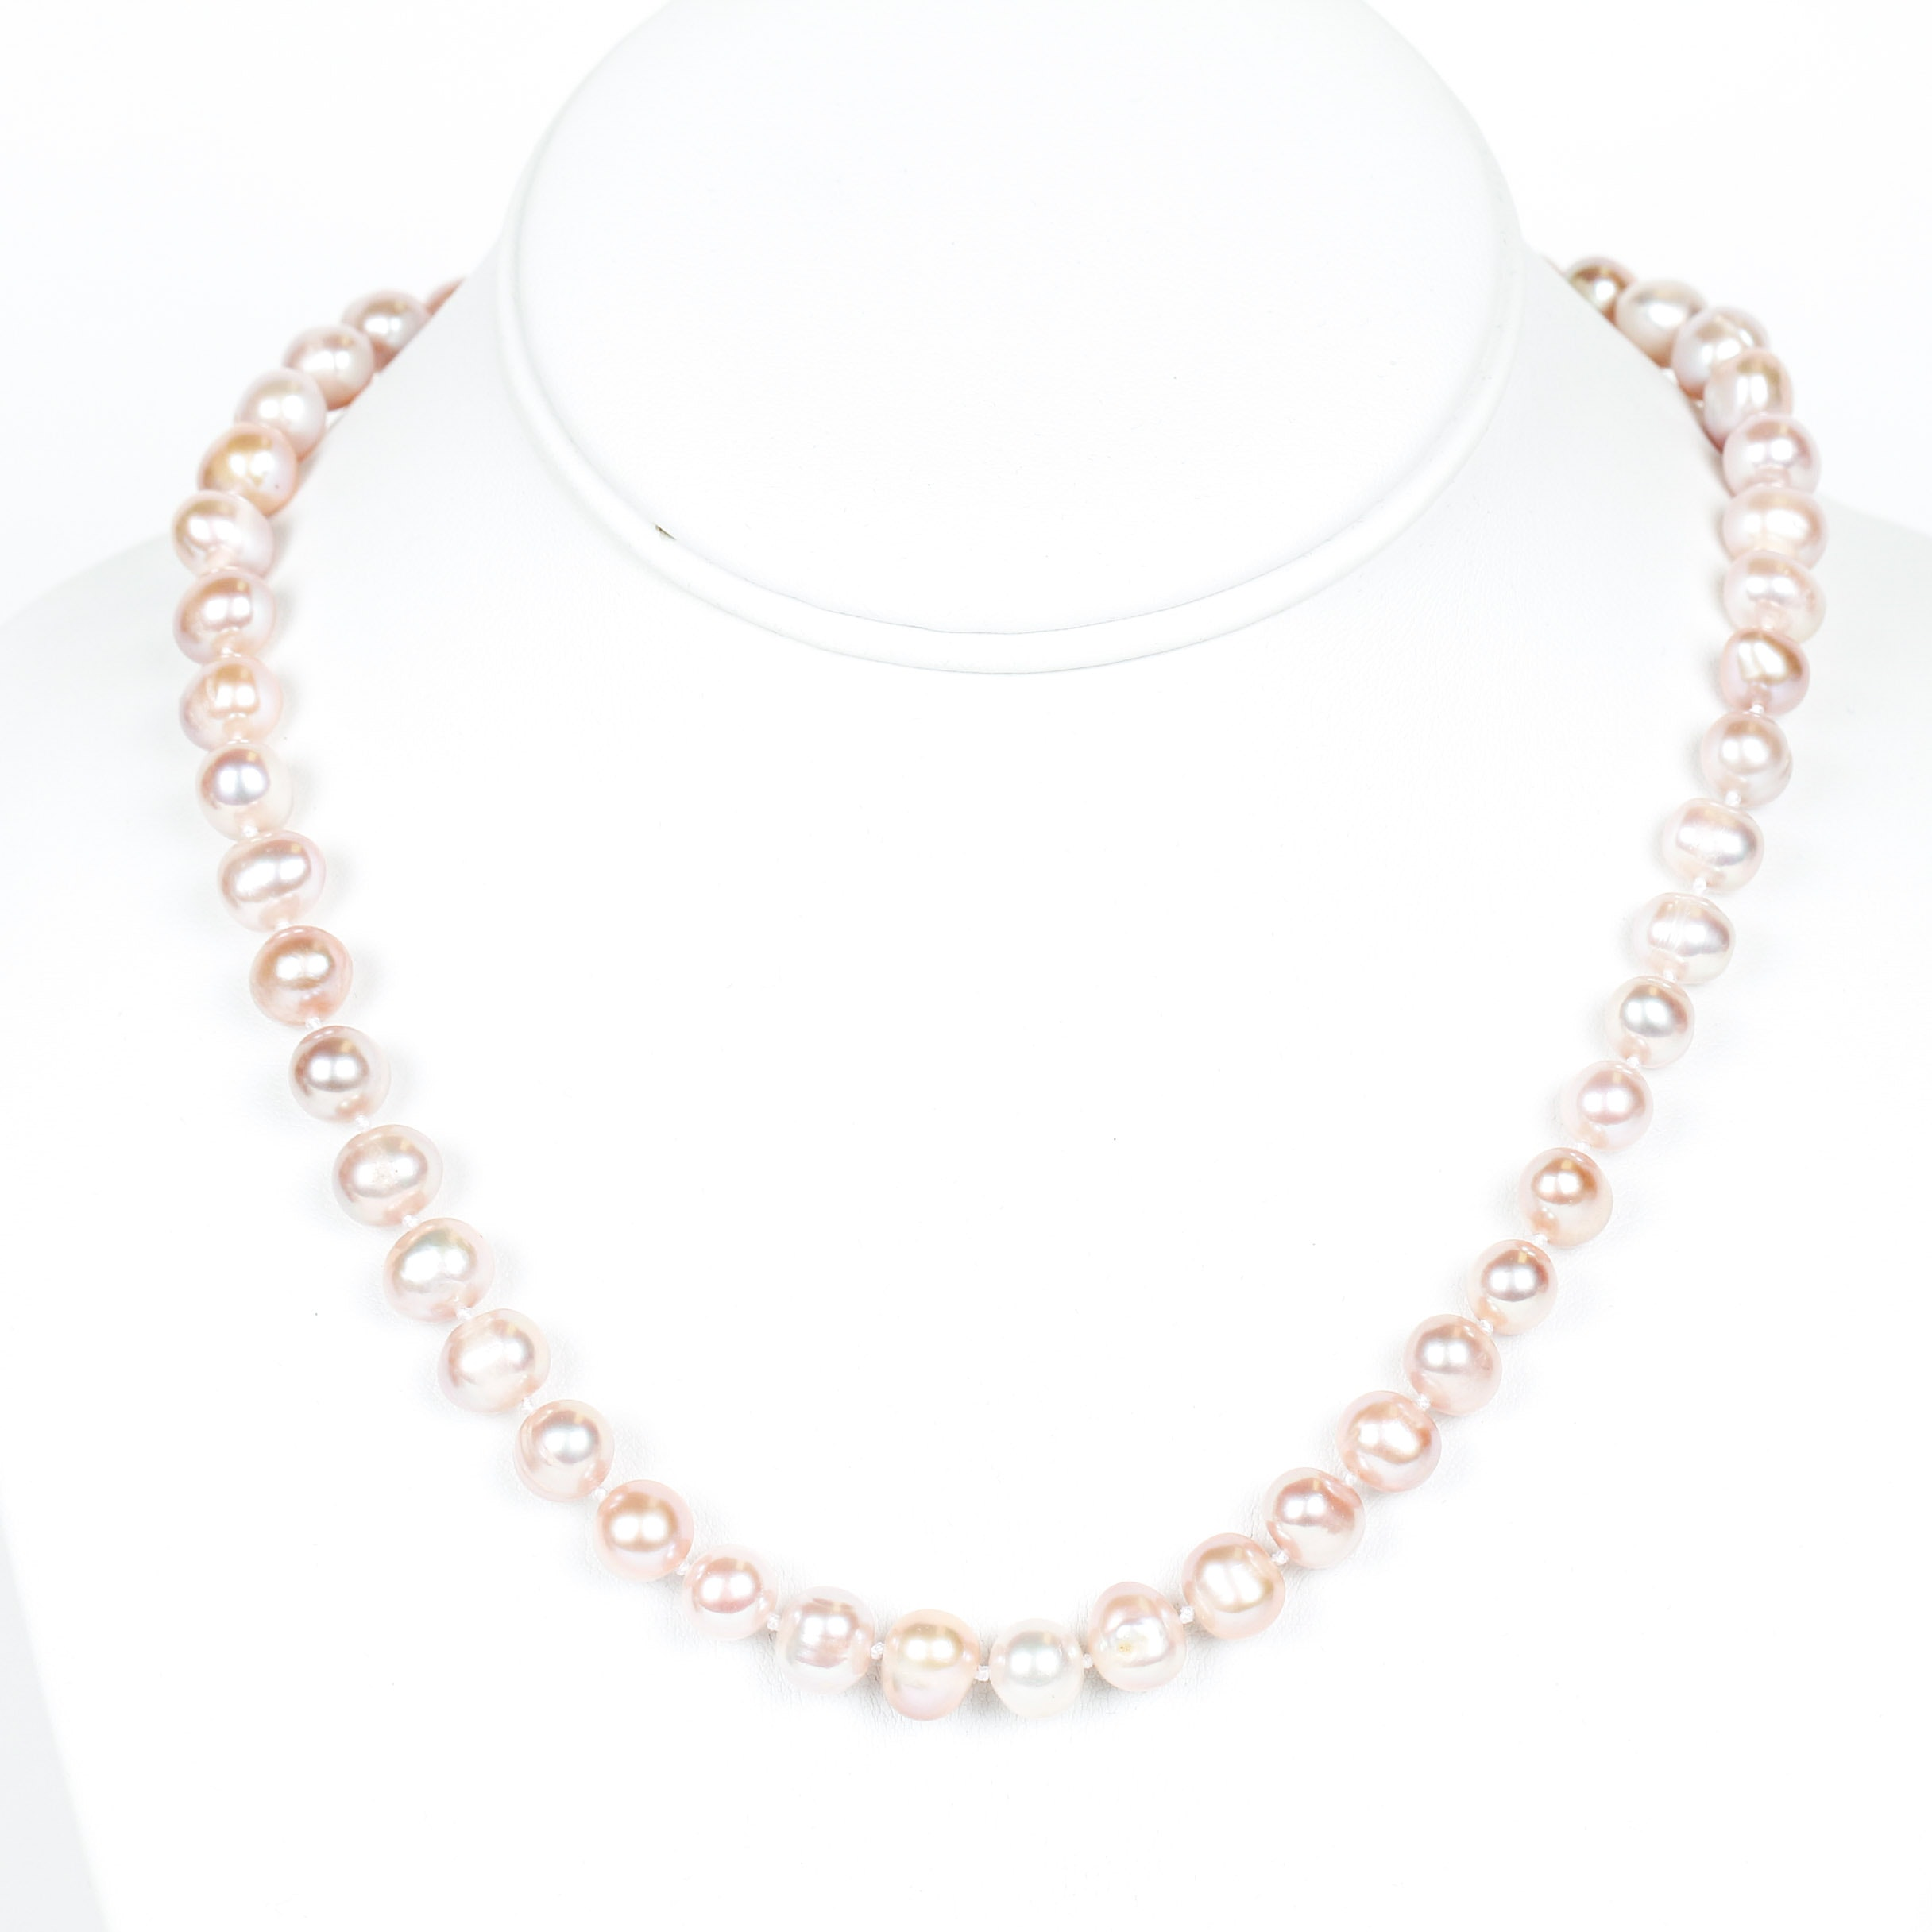 Dyed Freshwater Cultured Pearl Necklace with Sterling Silver Clasp